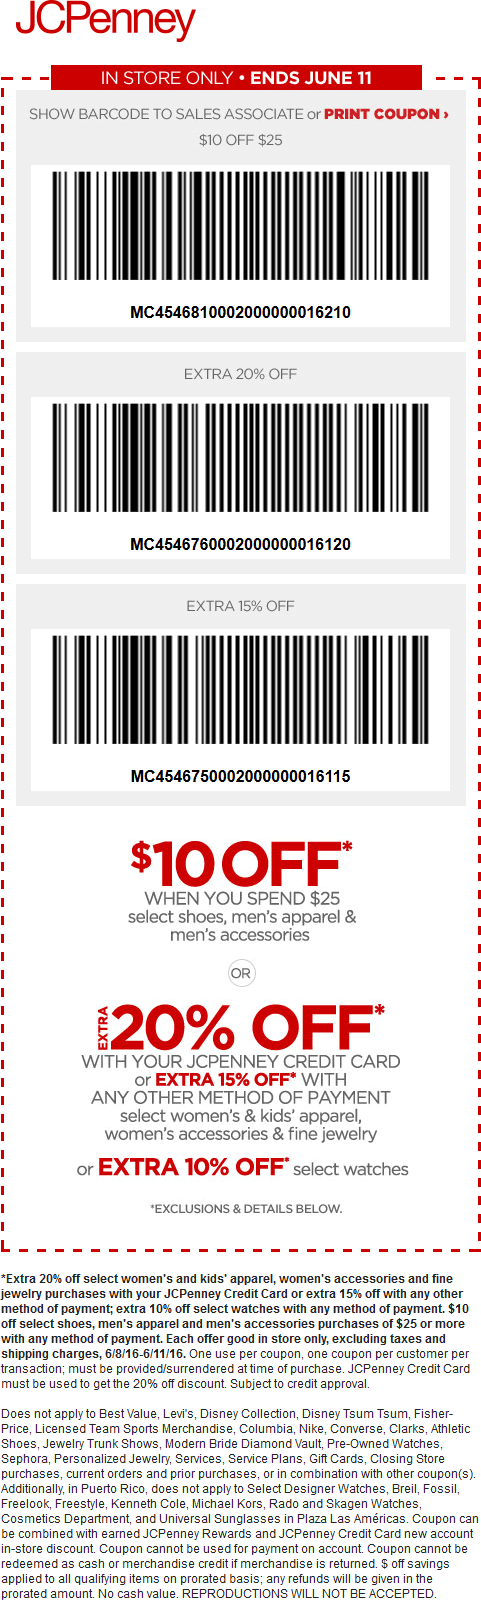 JCPenney Coupon December 2016 $10 off $25 on mens at JCPenney